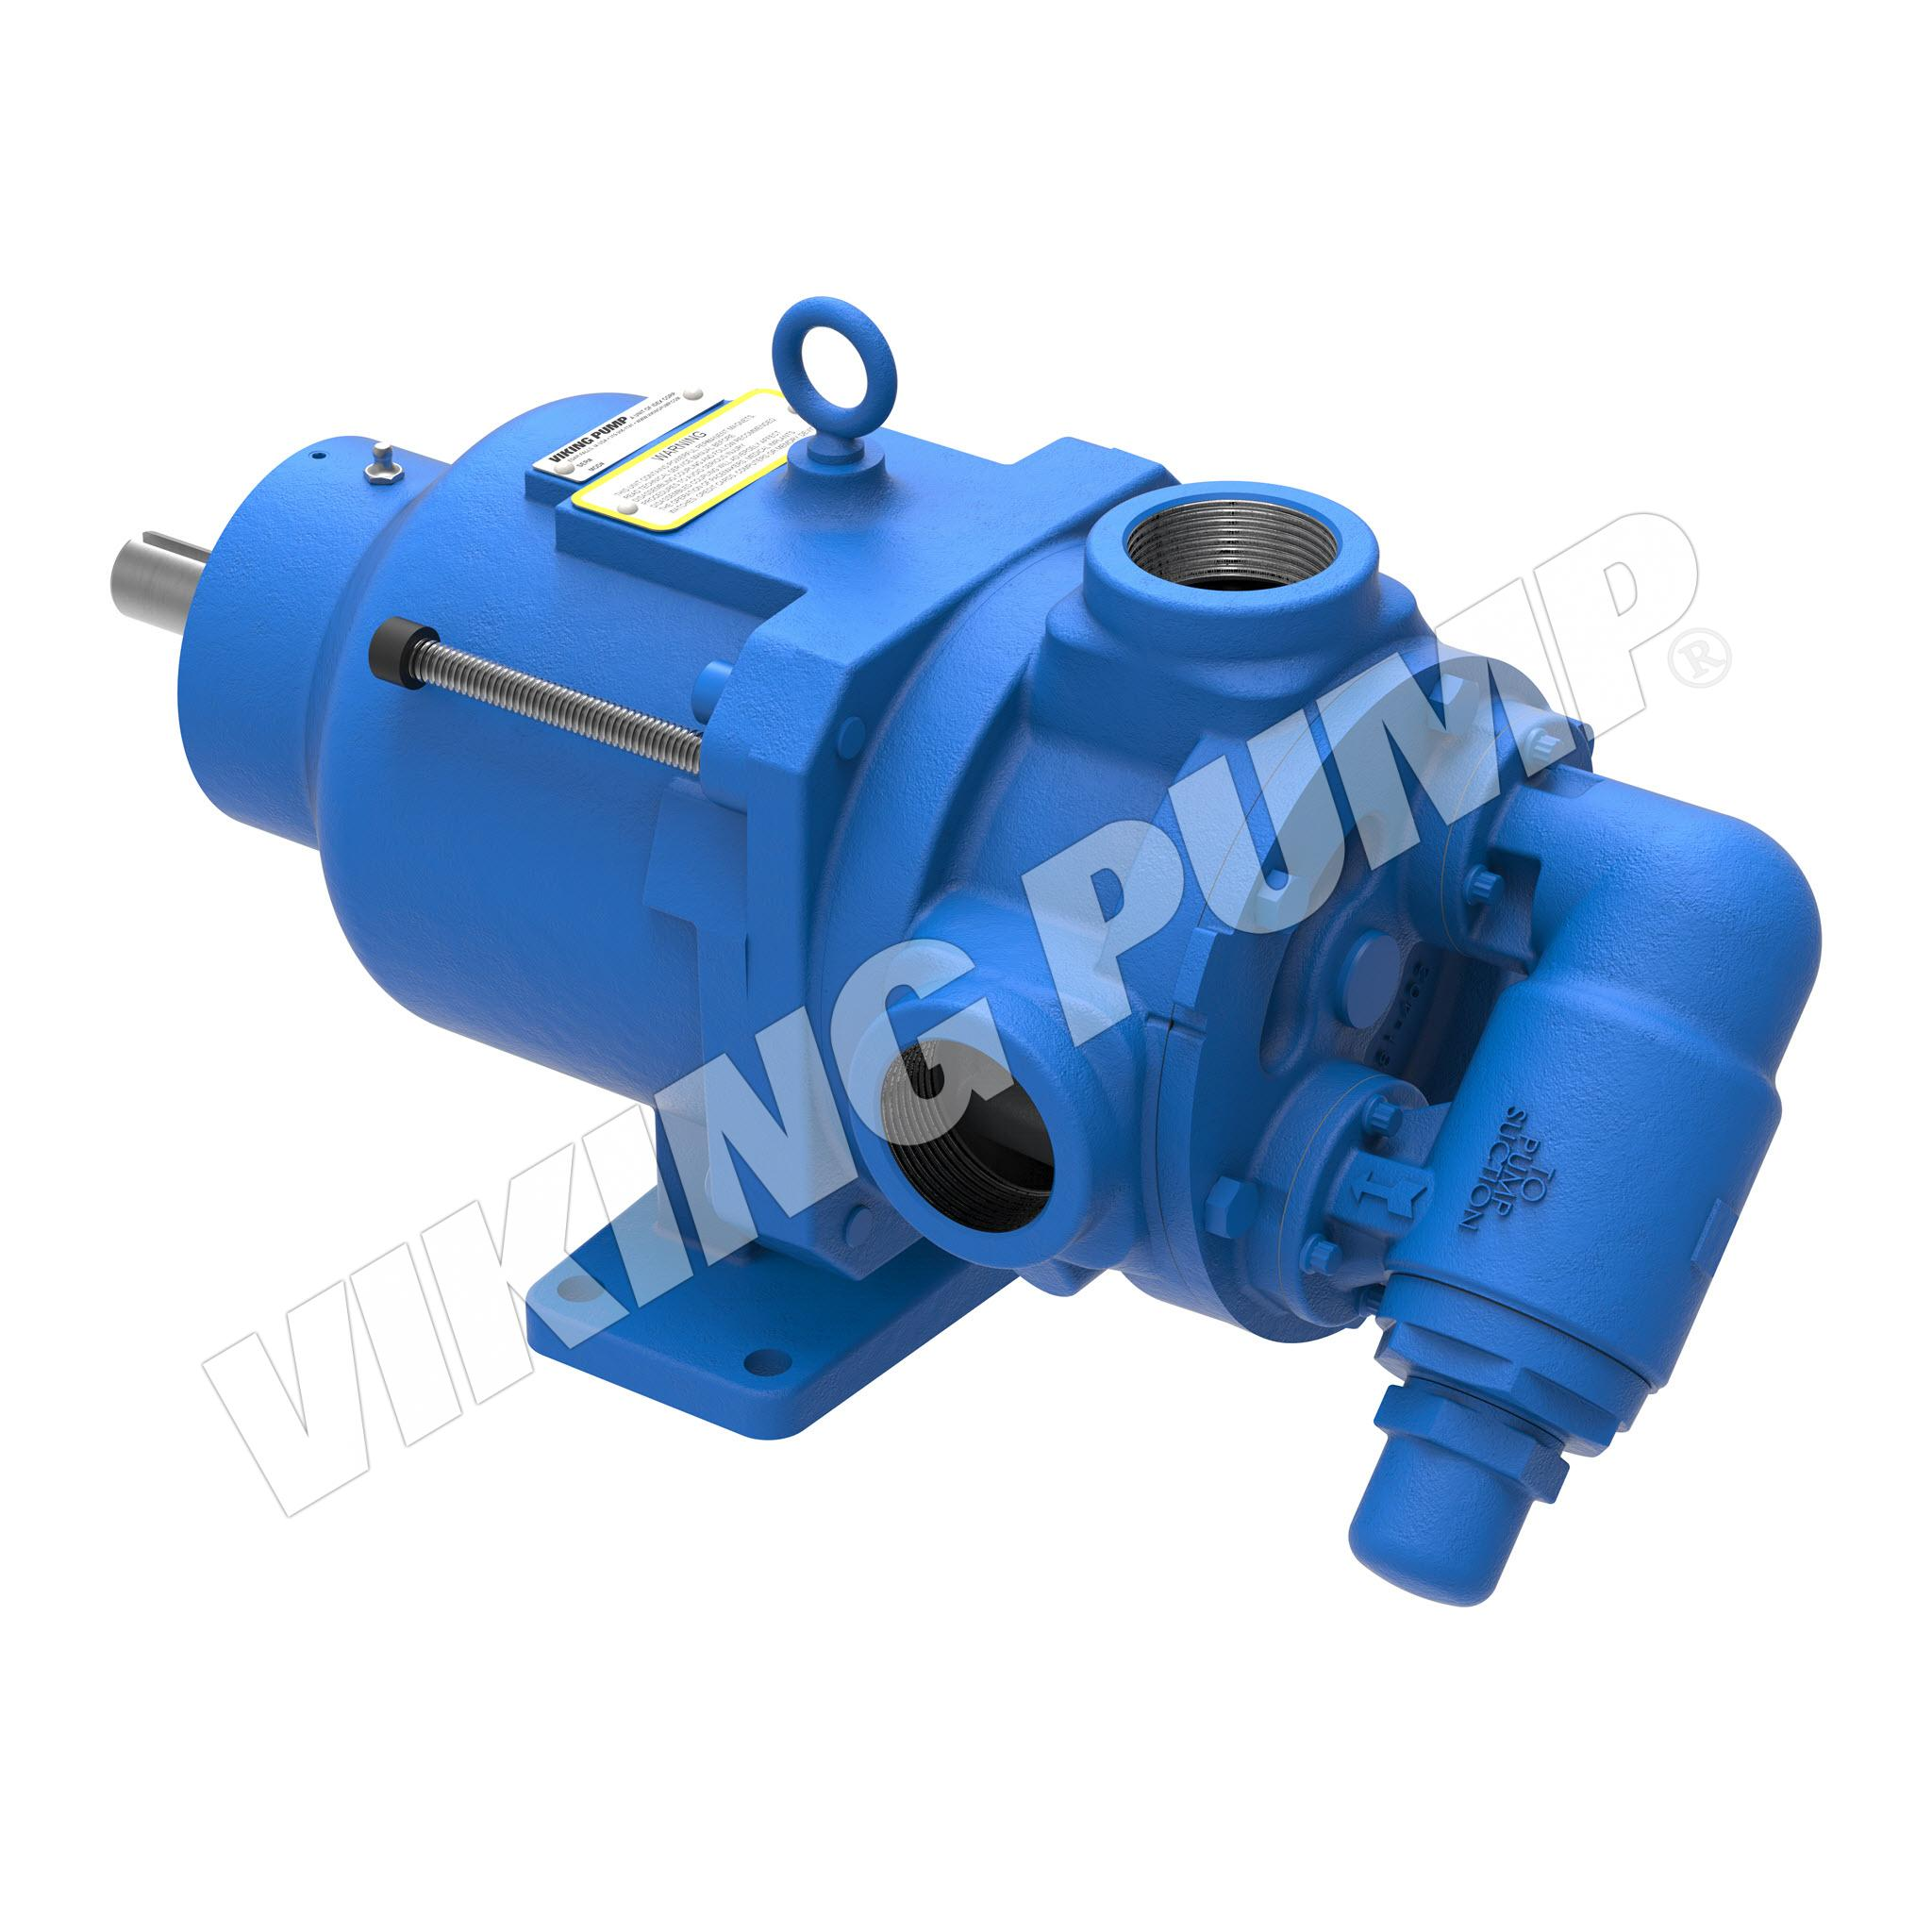 Model KK8124A, Foot Mounted, Mag Drive, Relief Valve Pump